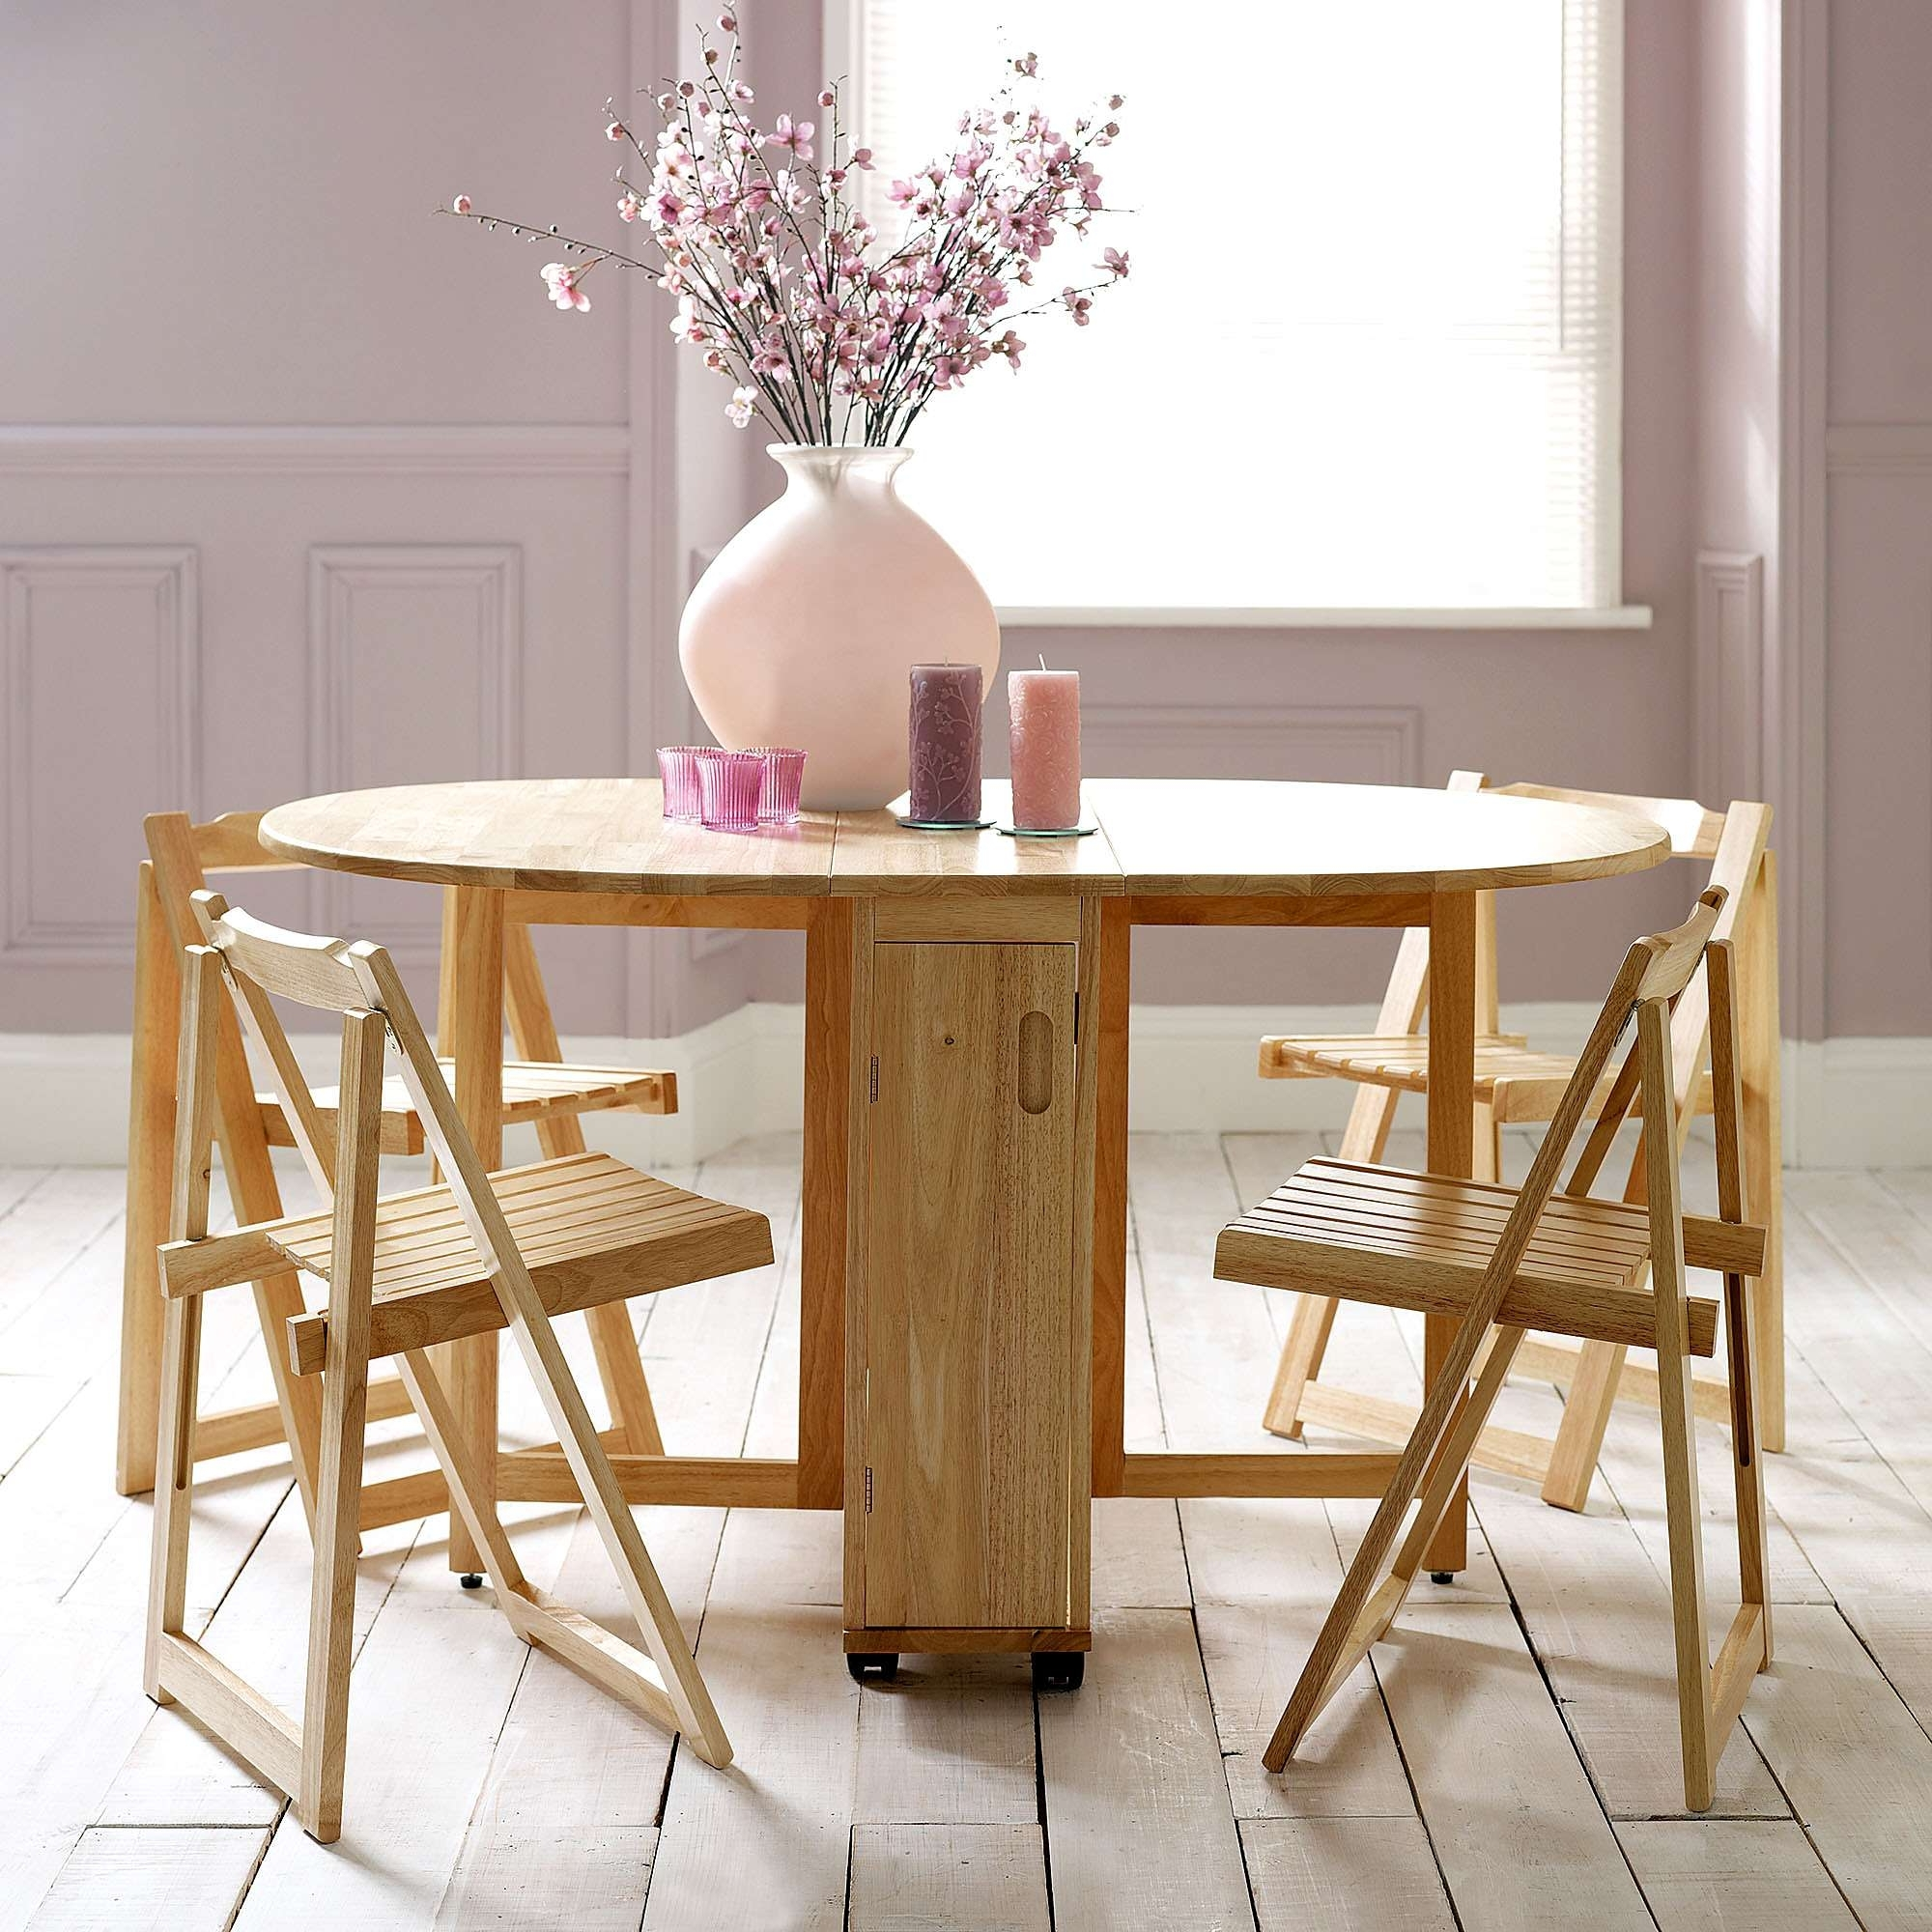 2018 Wood Folding Dining Tables with Choose A Folding Dining Table For A Small Space – Adorable Home